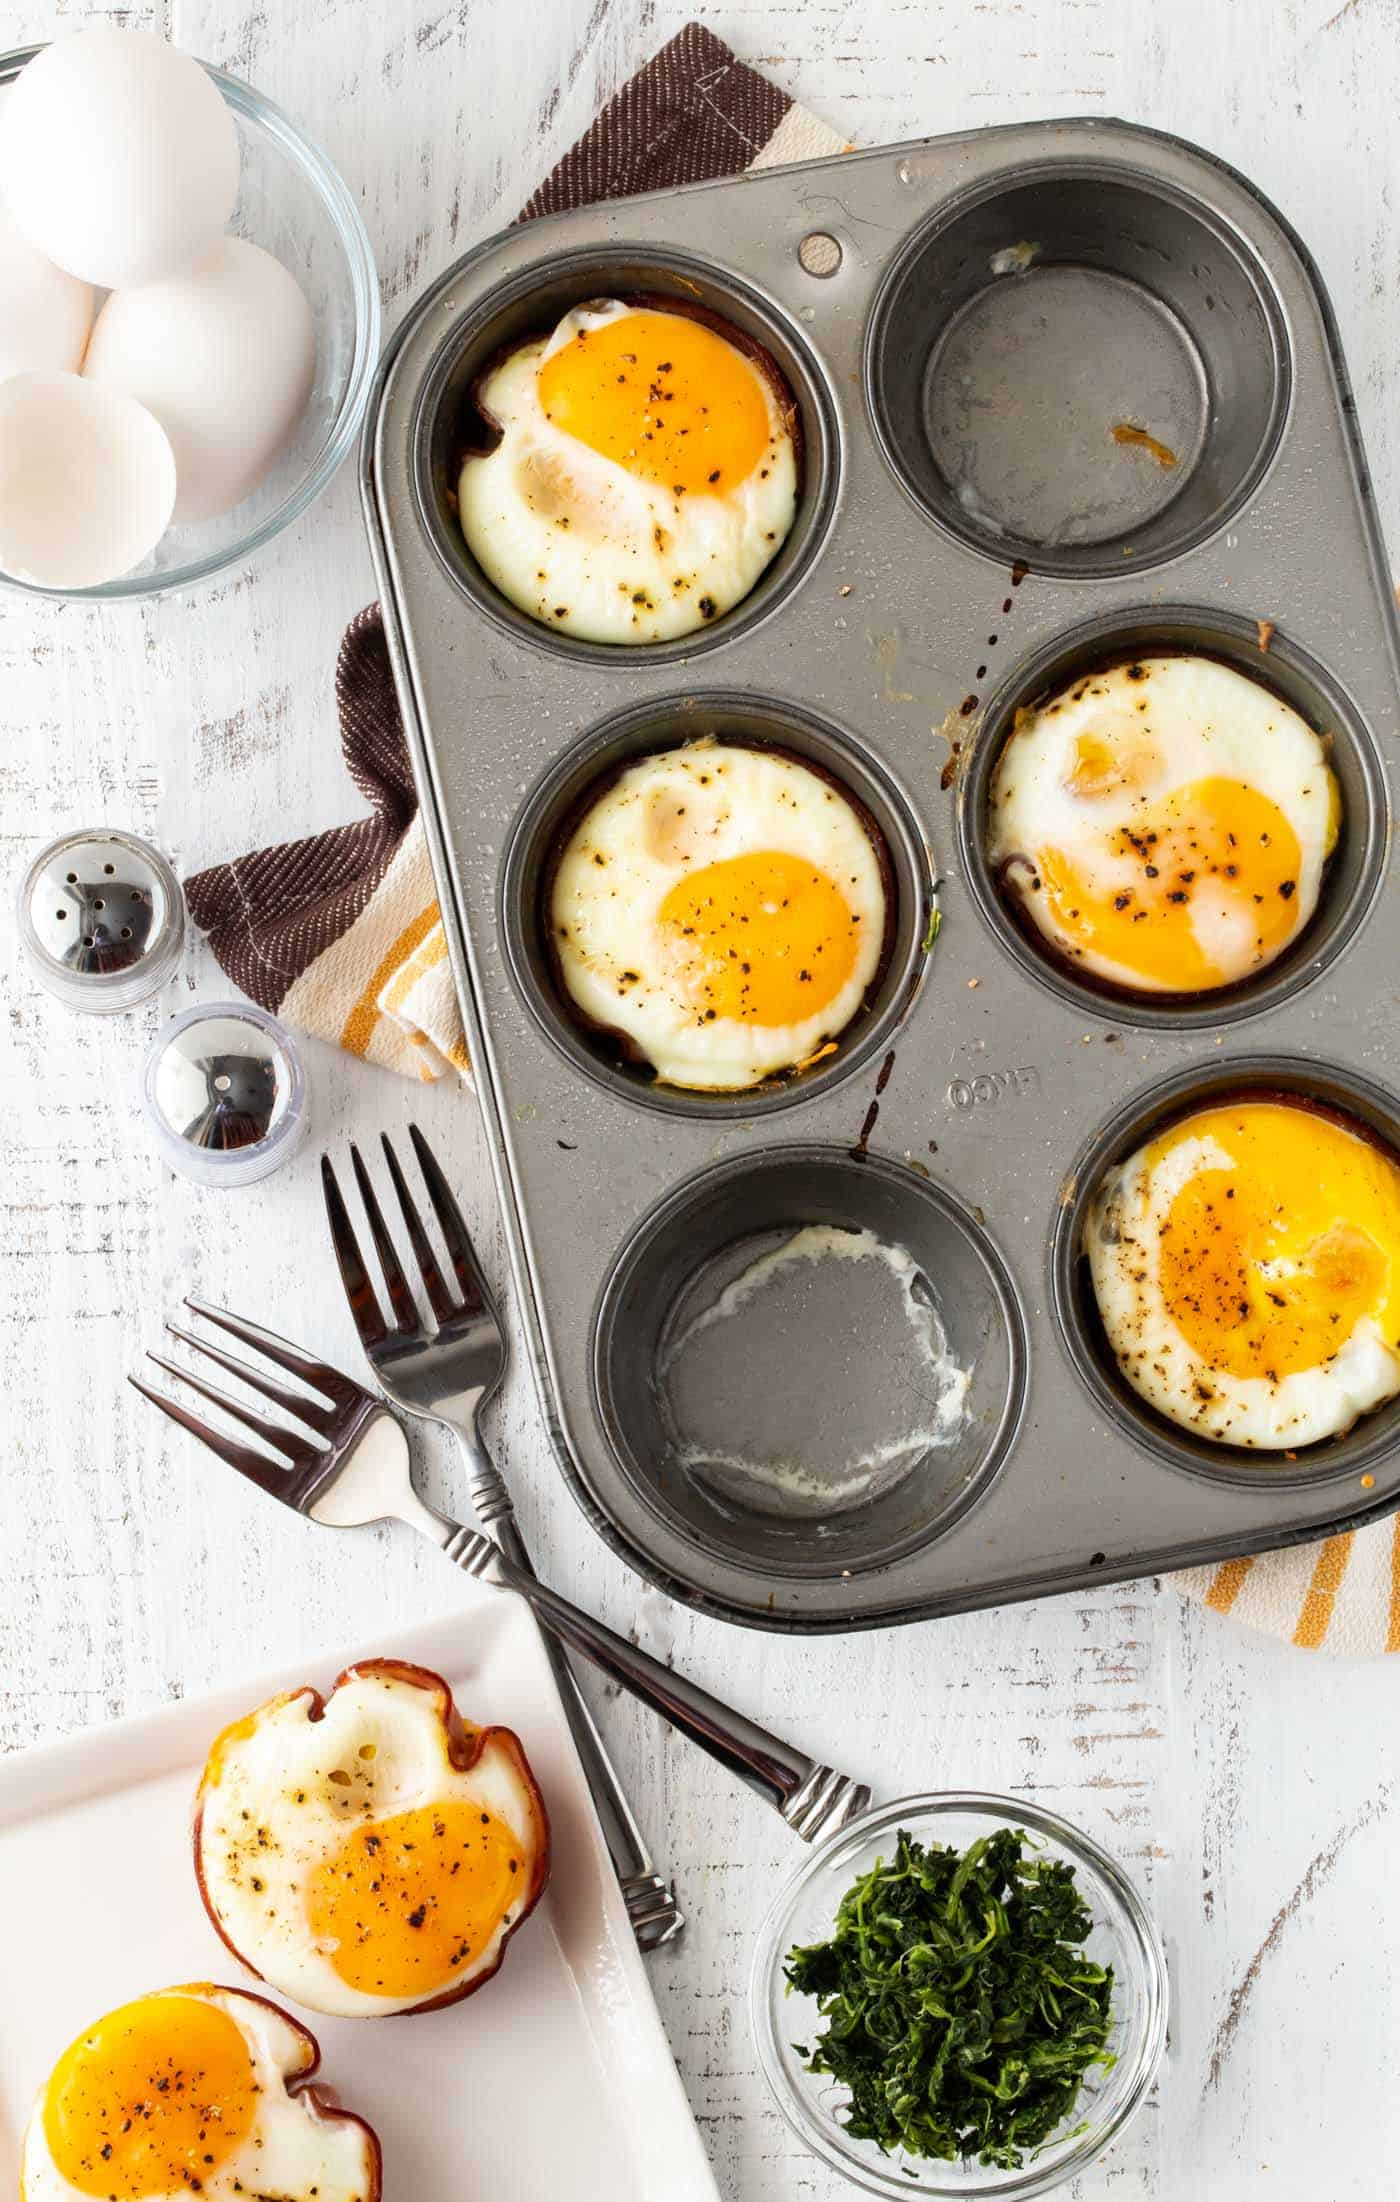 Muffin tin full of Cheesy Spinach and Ham Egg Cups. Surrounded by baked egg cups on a white plate, forks, salt and pepper shakers.